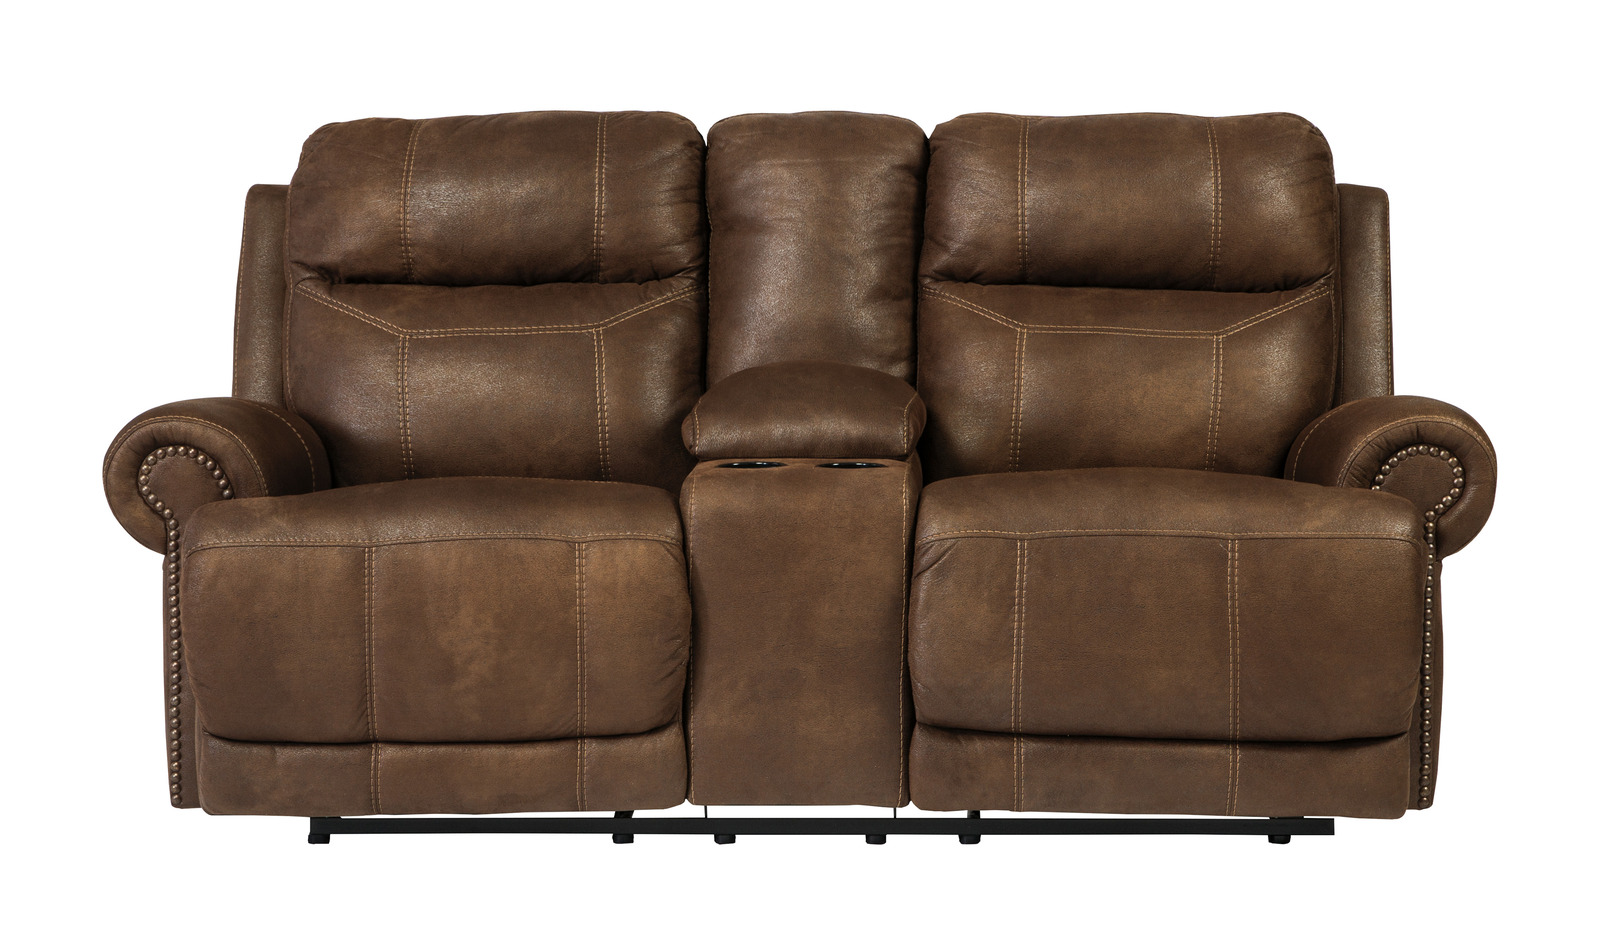 Austere Double Reclining Loveseat W Console In Brown 3840094 CLEARANCE